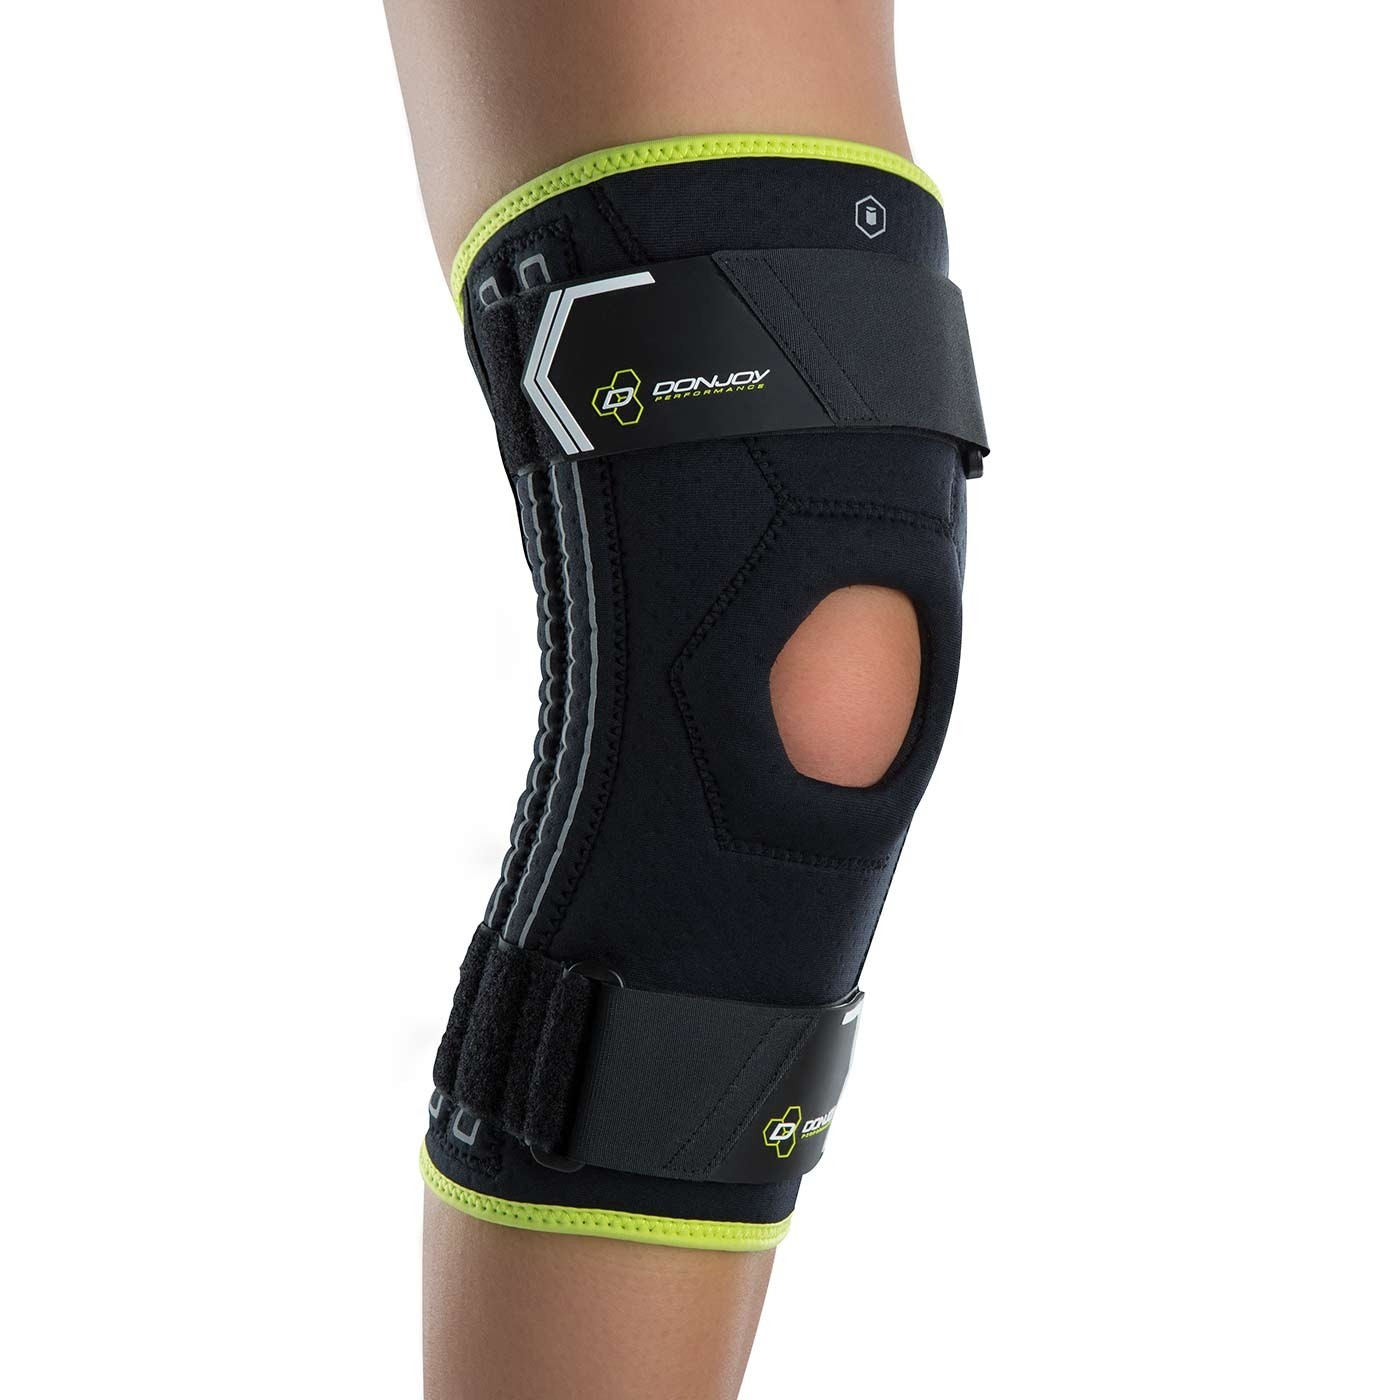 DonJoy Performance Stabilizing Knee Sleeve